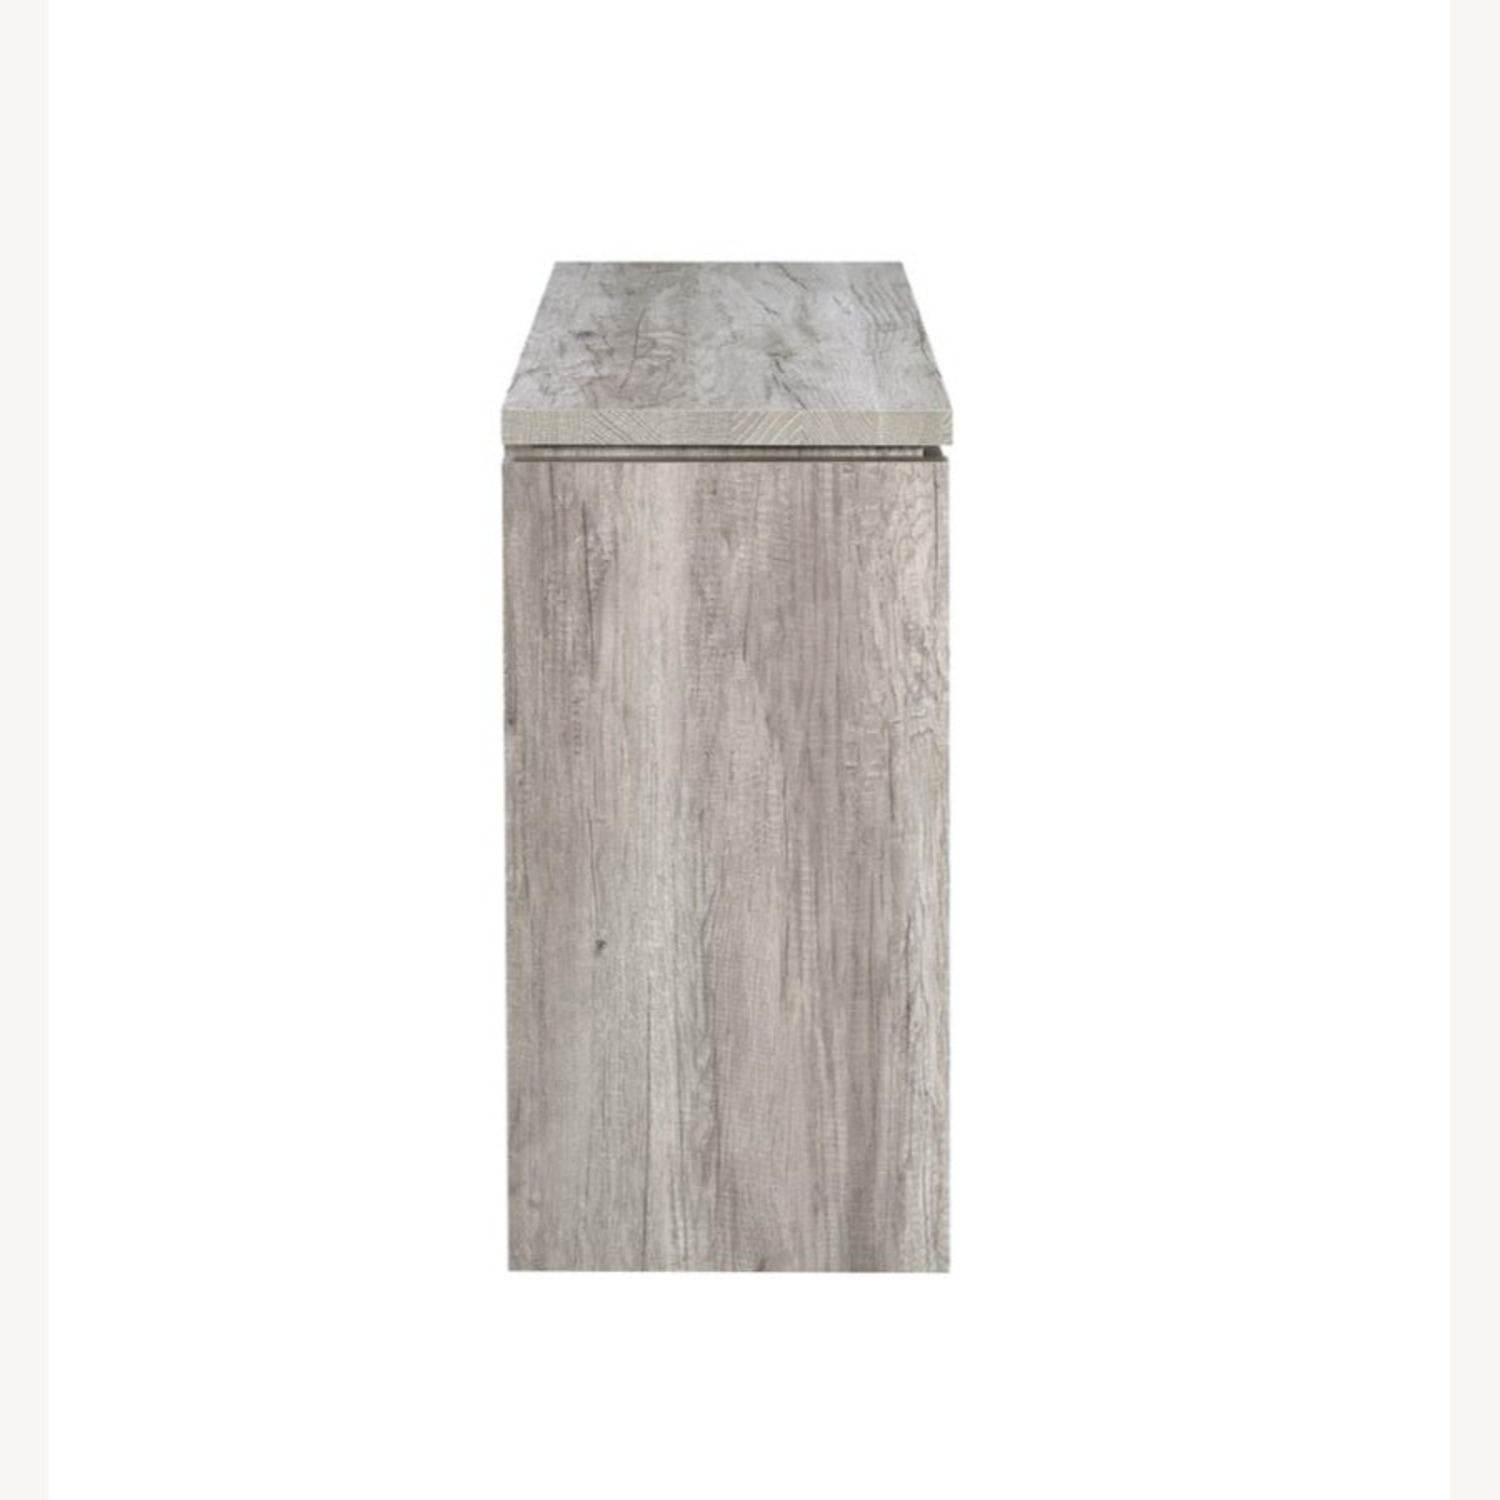 Accent Cabinet In Grey Driftwood Finish - image-4